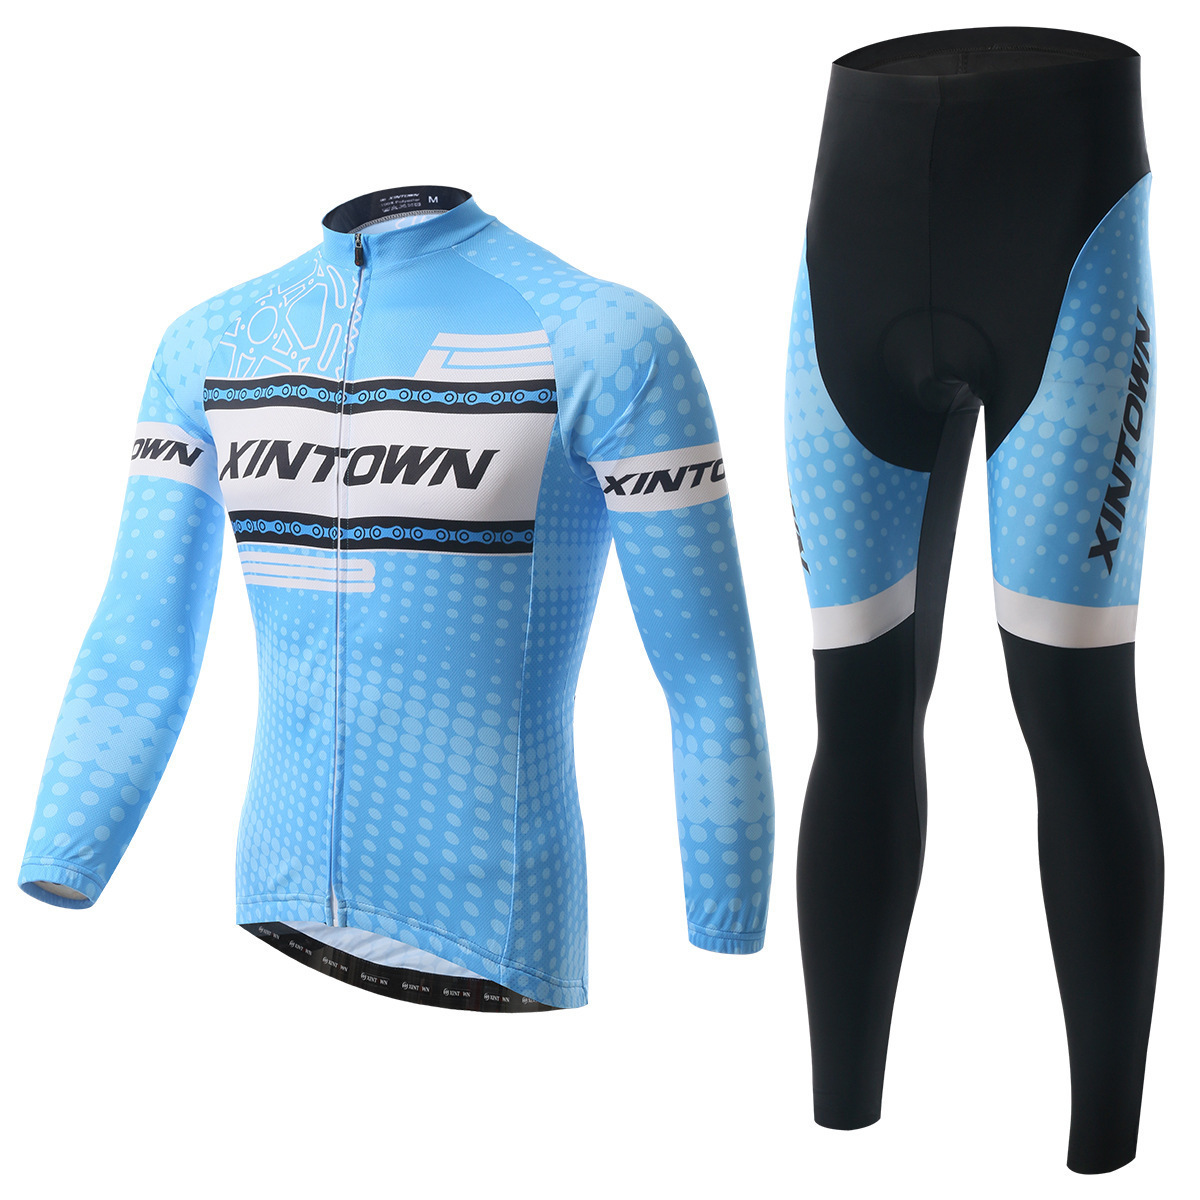 XINTOWN Cycling Jersey Set Long Sleeve Bicycle Clothing Maillot Ciclismo Bike Clothes Cycling Set For Men Spring Jersey Sets 2017 mavic maillot ciclismo zebra pattern men personality long sleeve cycling breathable bike bicycle clothes polyester s 6xl